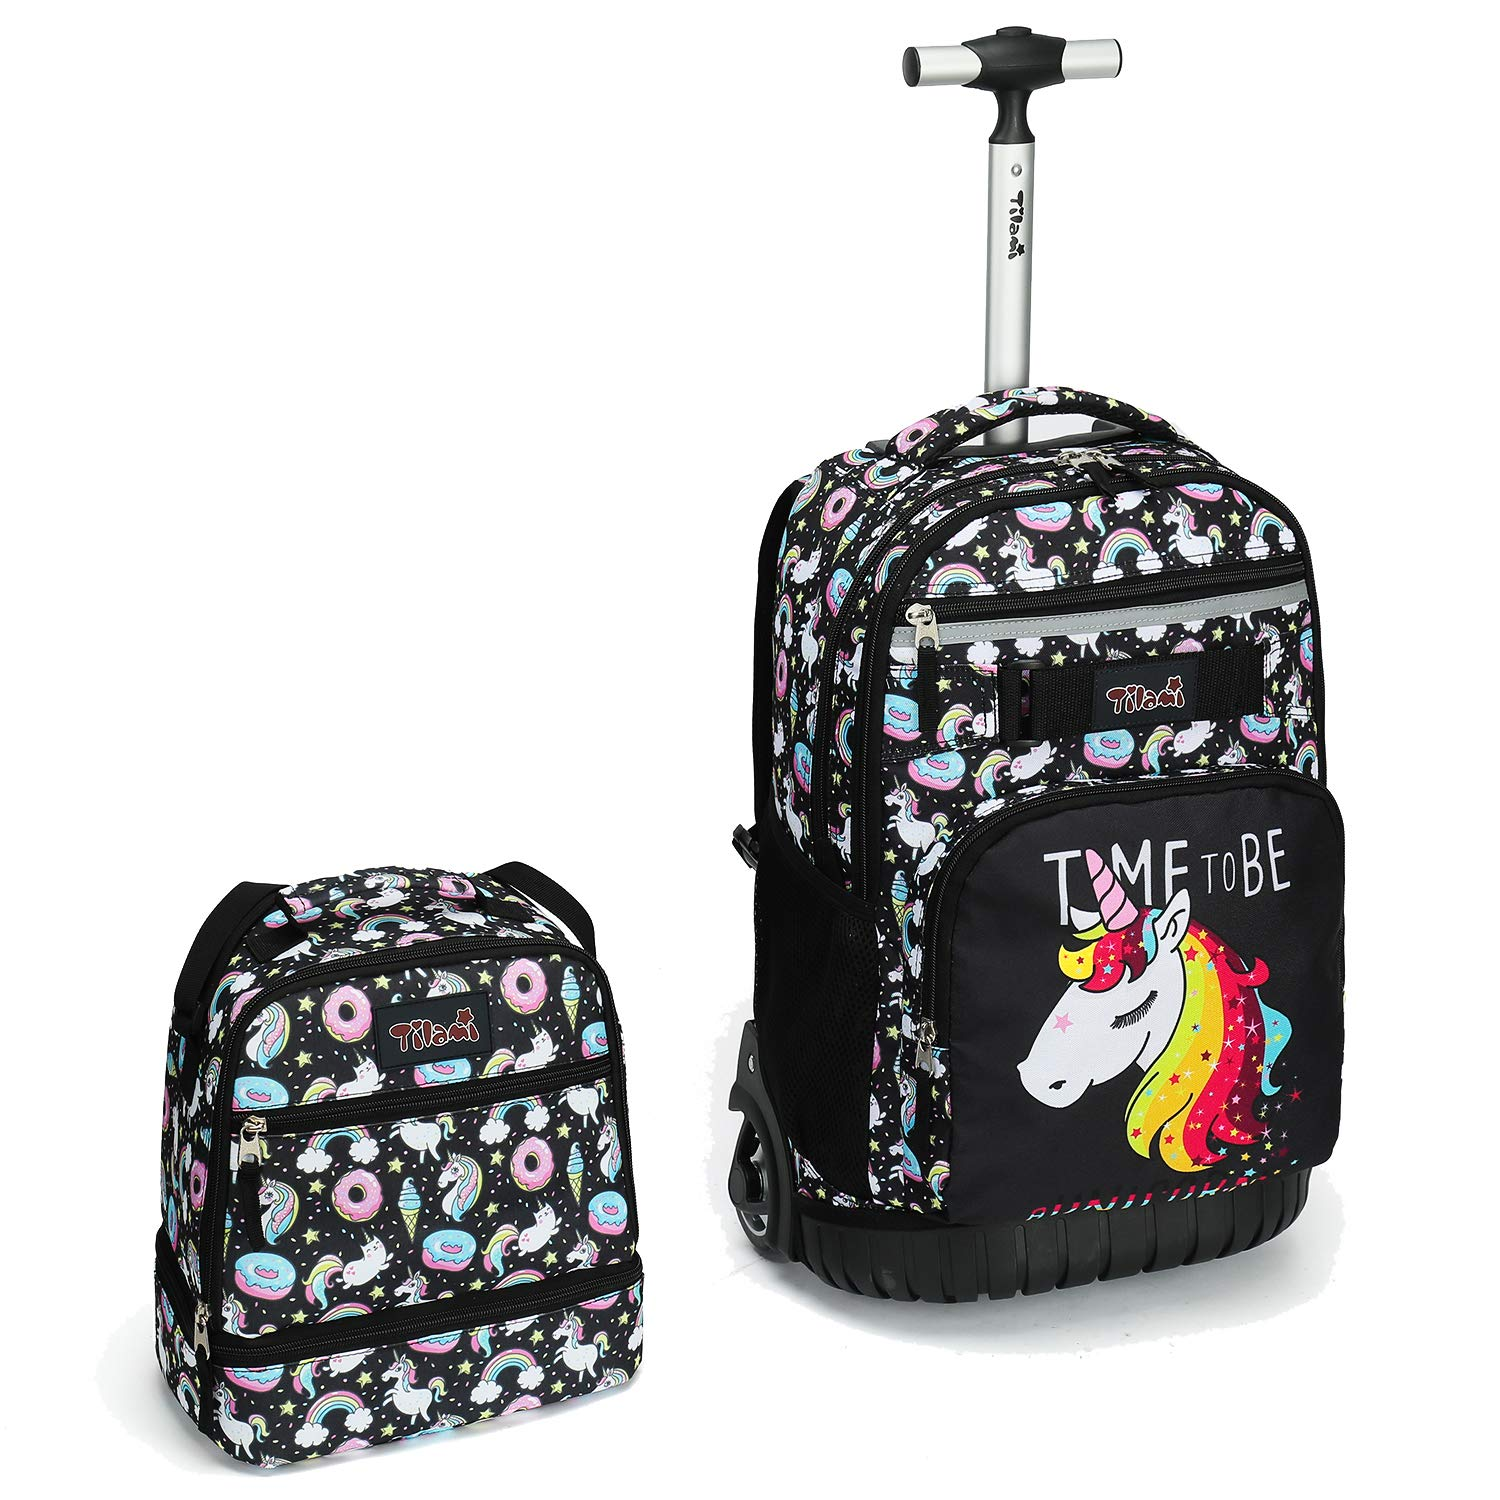 96e99b822d0d Tilami Rolling Backpack 18 inch with Lunch Bag Wheeled Laptop Backpack  Waterproof School College Student Travel Trip Boys and Girls, Unicorn Cute